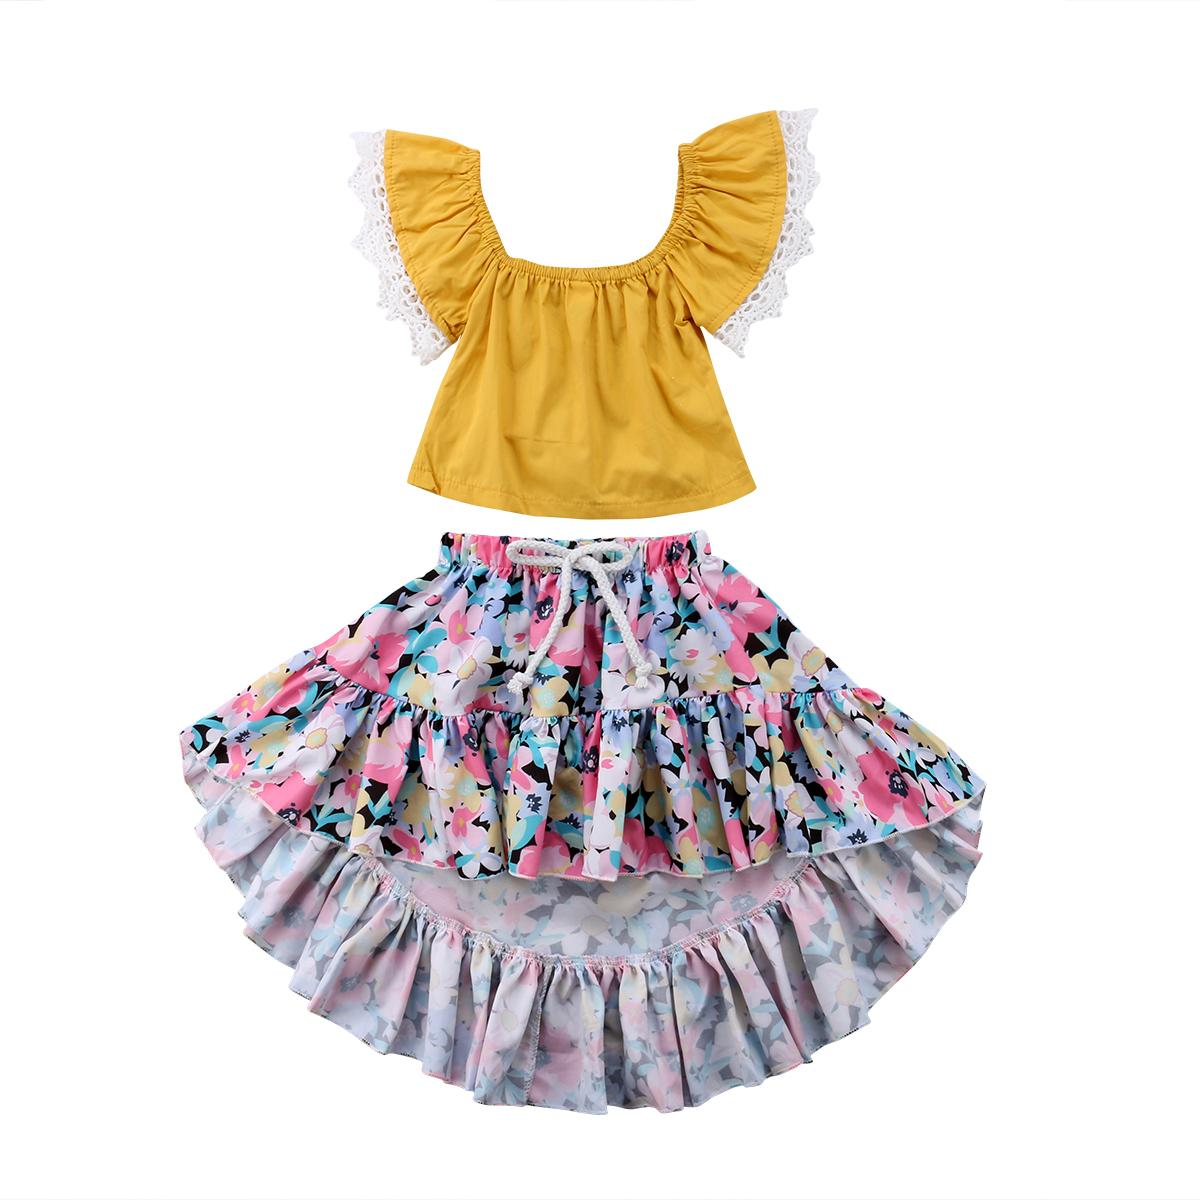 daf763454491 2019 Emmababy New 2018 Kids Baby Girl Summer Outfits Lace Fly Sleeve ...